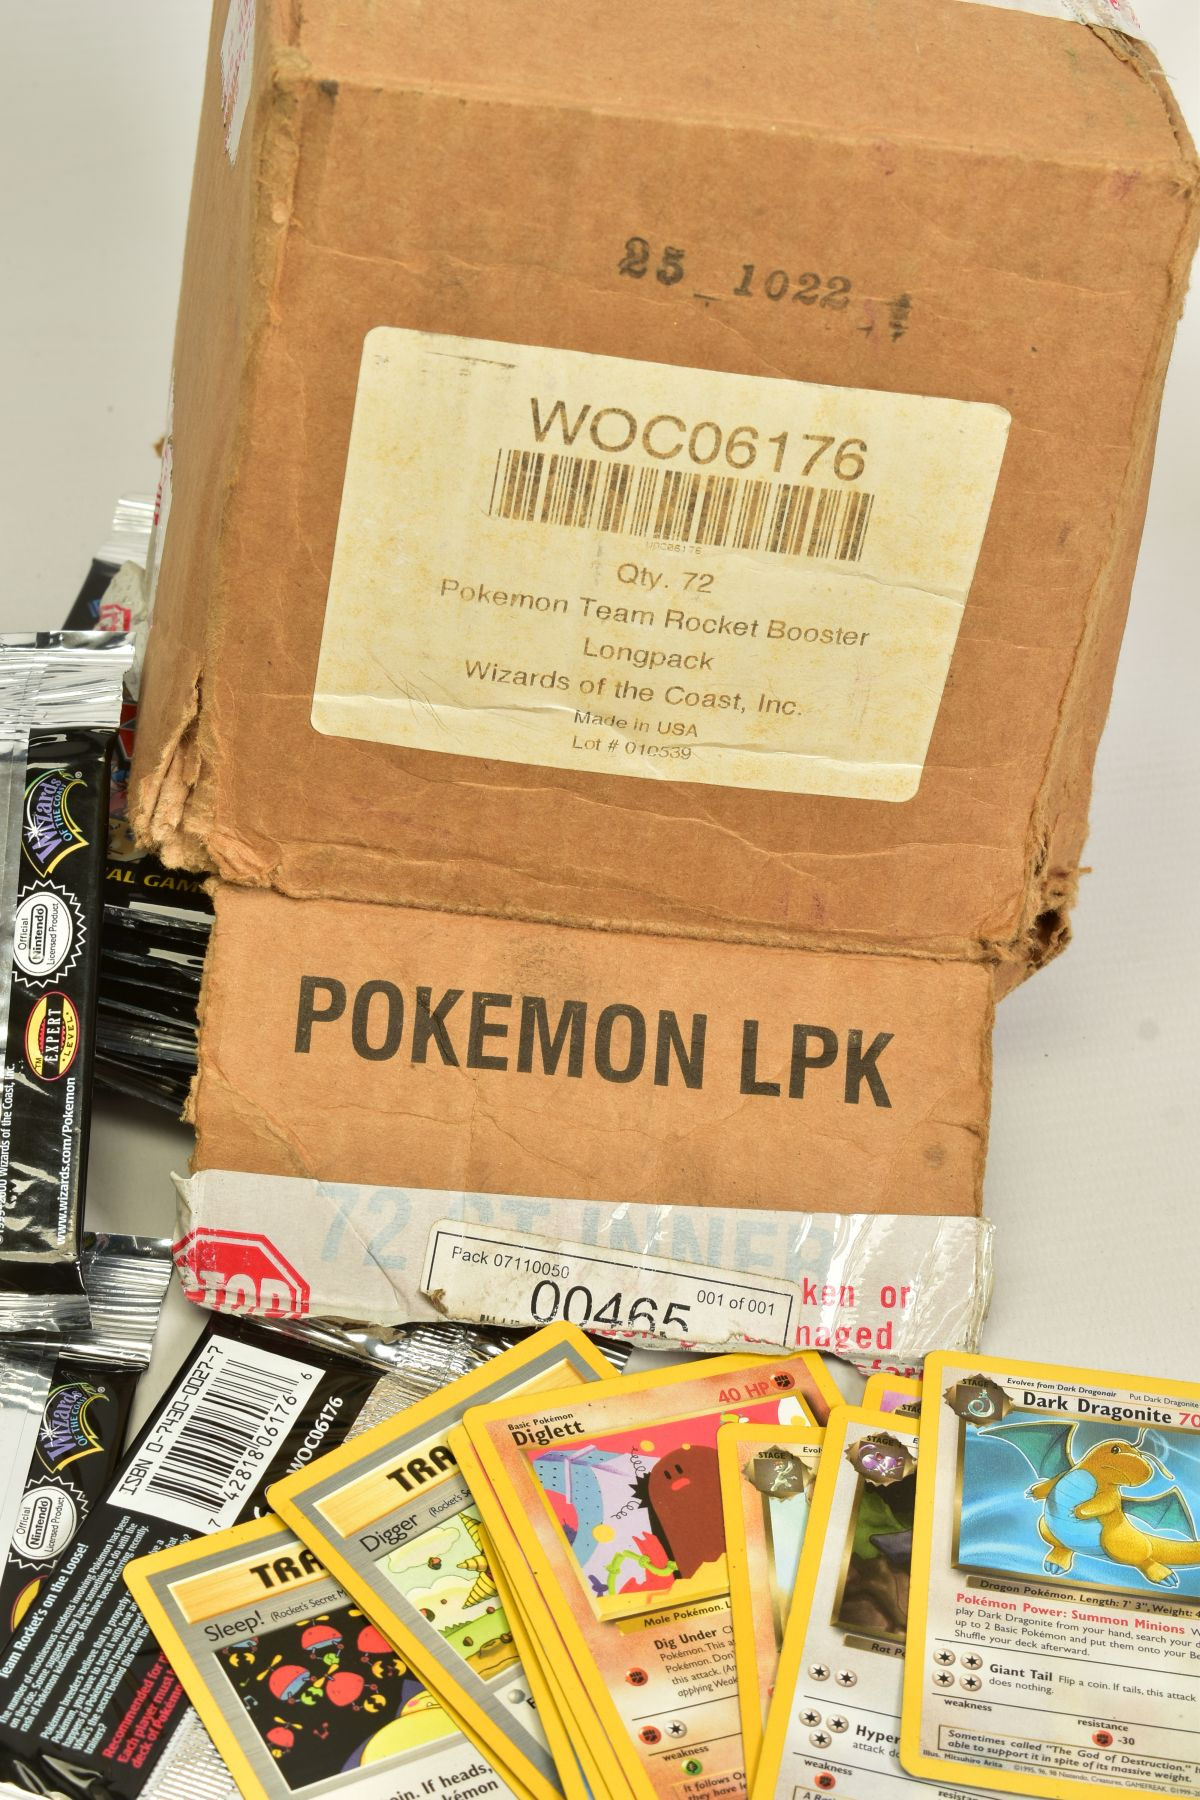 A QUANTITY OF SEVENTY SEALED POKEMON UNLIMITED TEAM ROCKET BOOSTER LONG PACKS, four different packet - Image 5 of 9